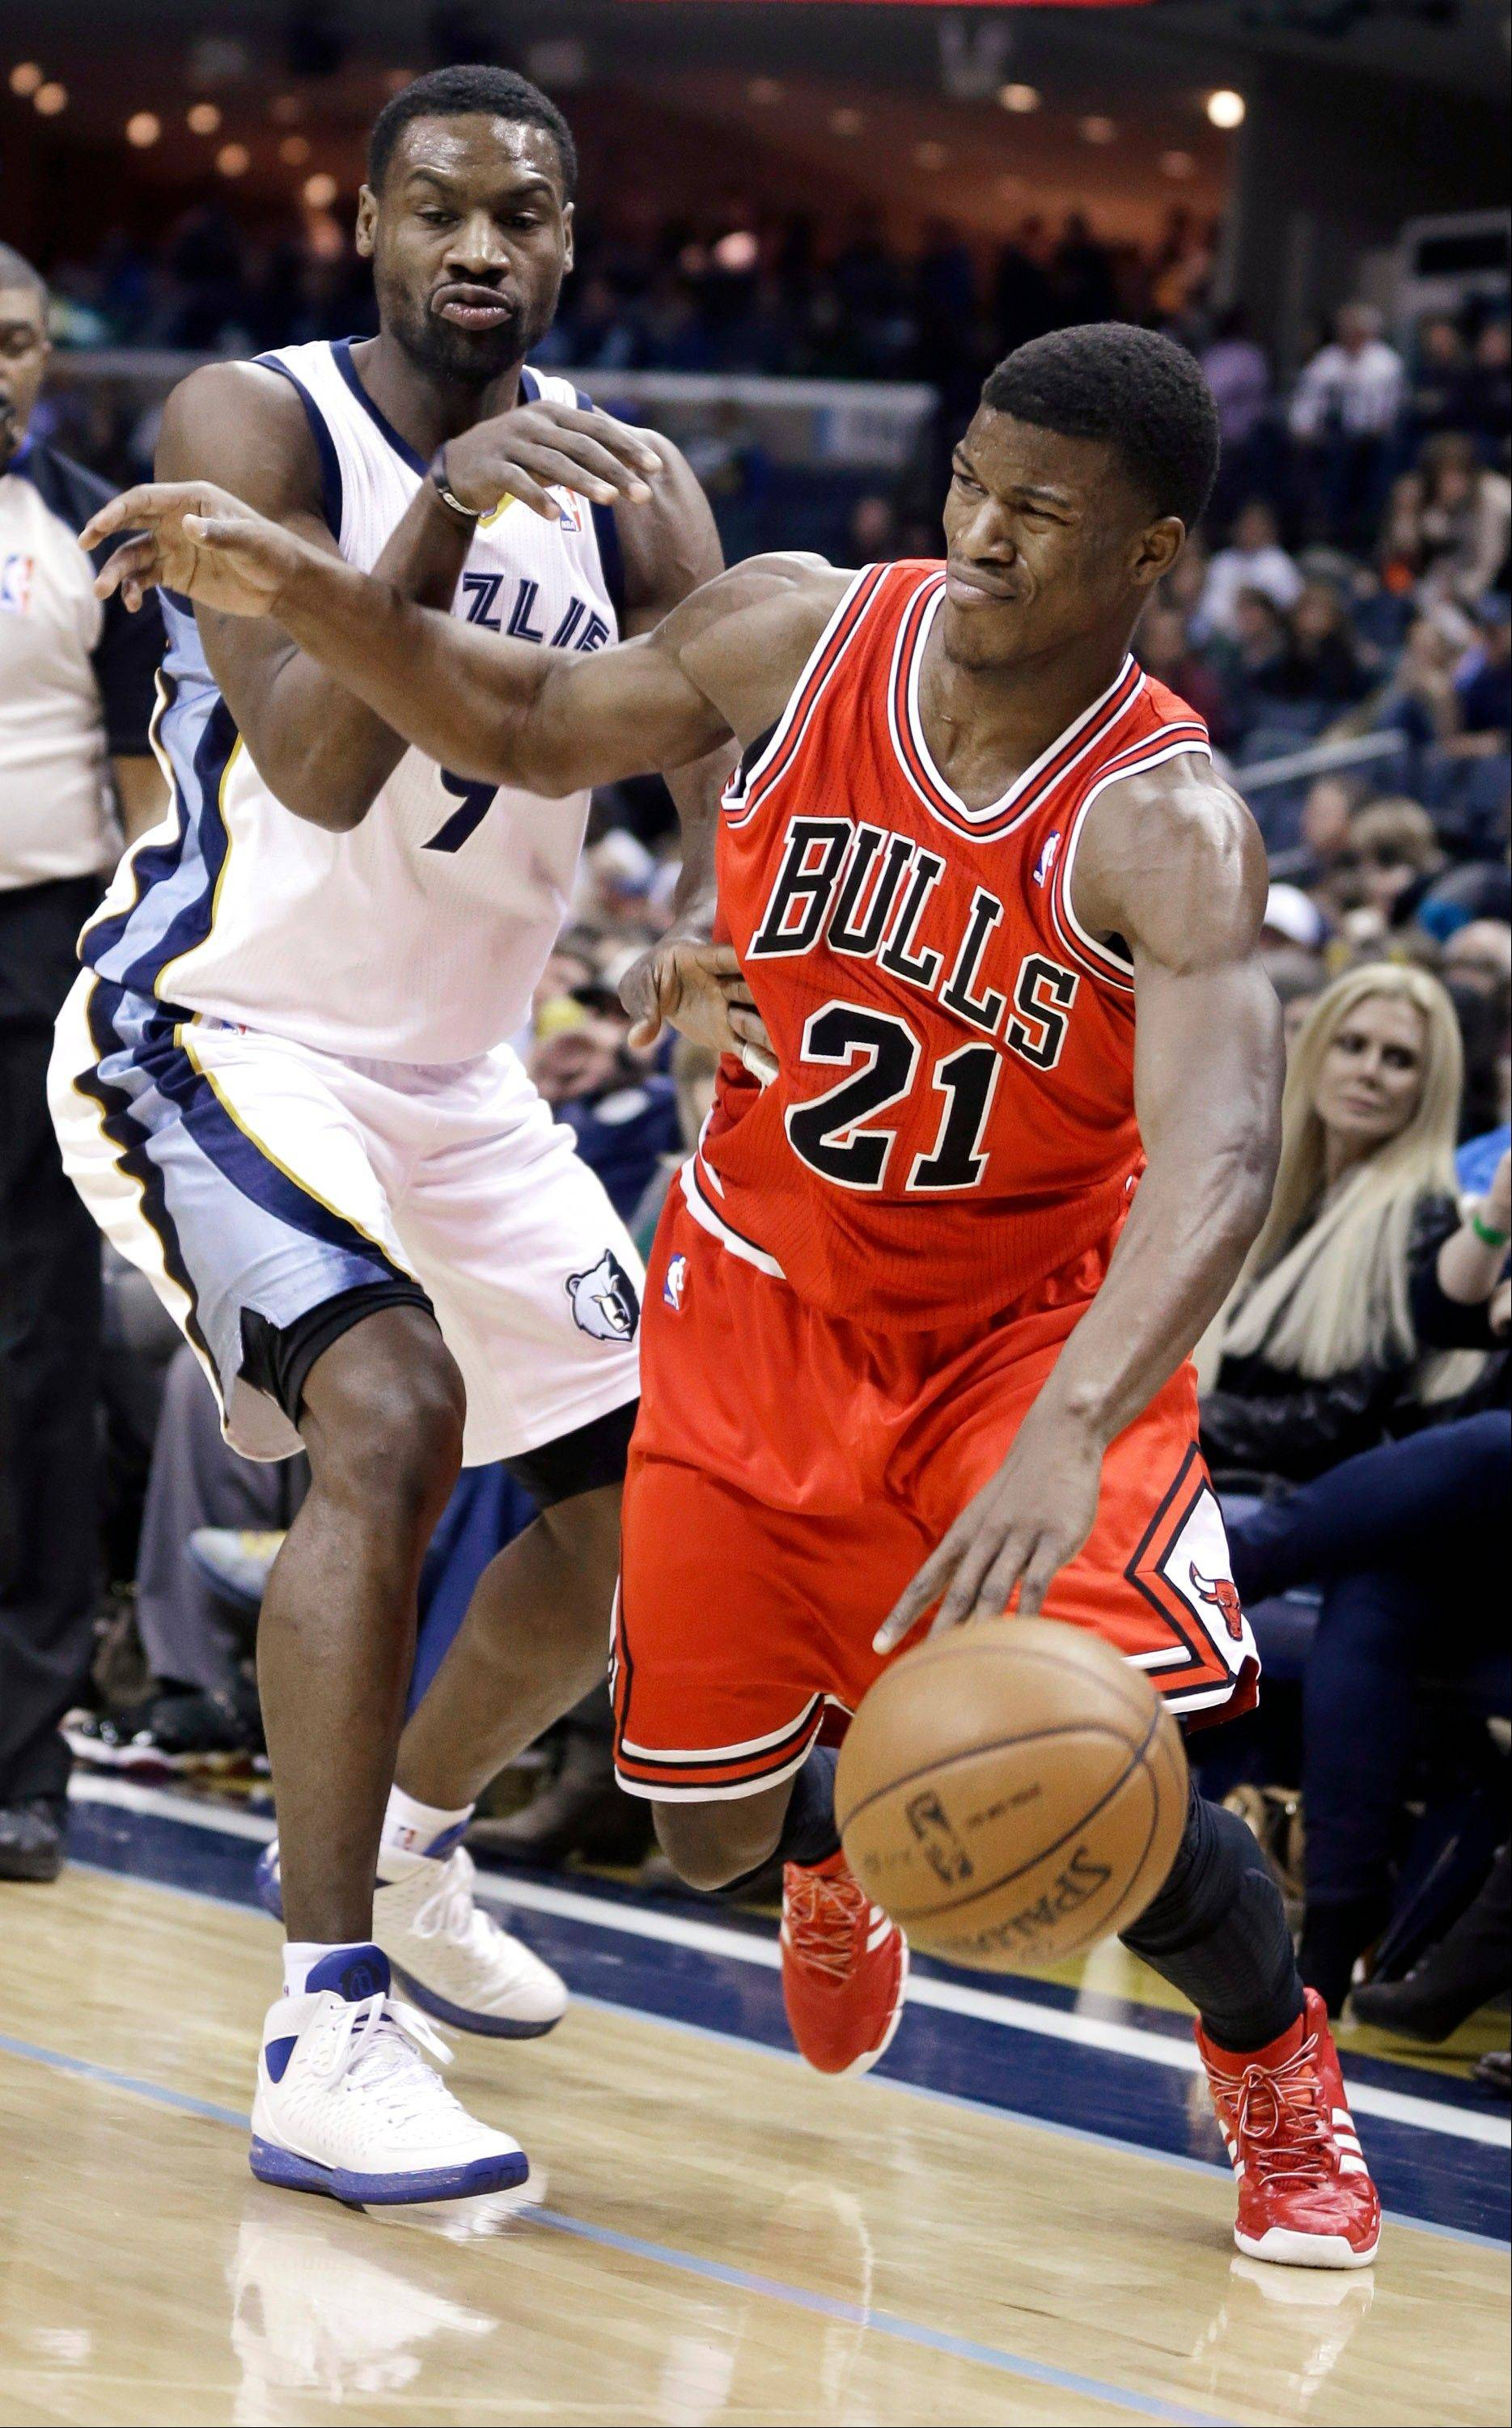 The Bulls� Jimmy Butler drives past the Grizzlies� Tony Allen in the first half of Monday�s game in Memphis, Tenn.